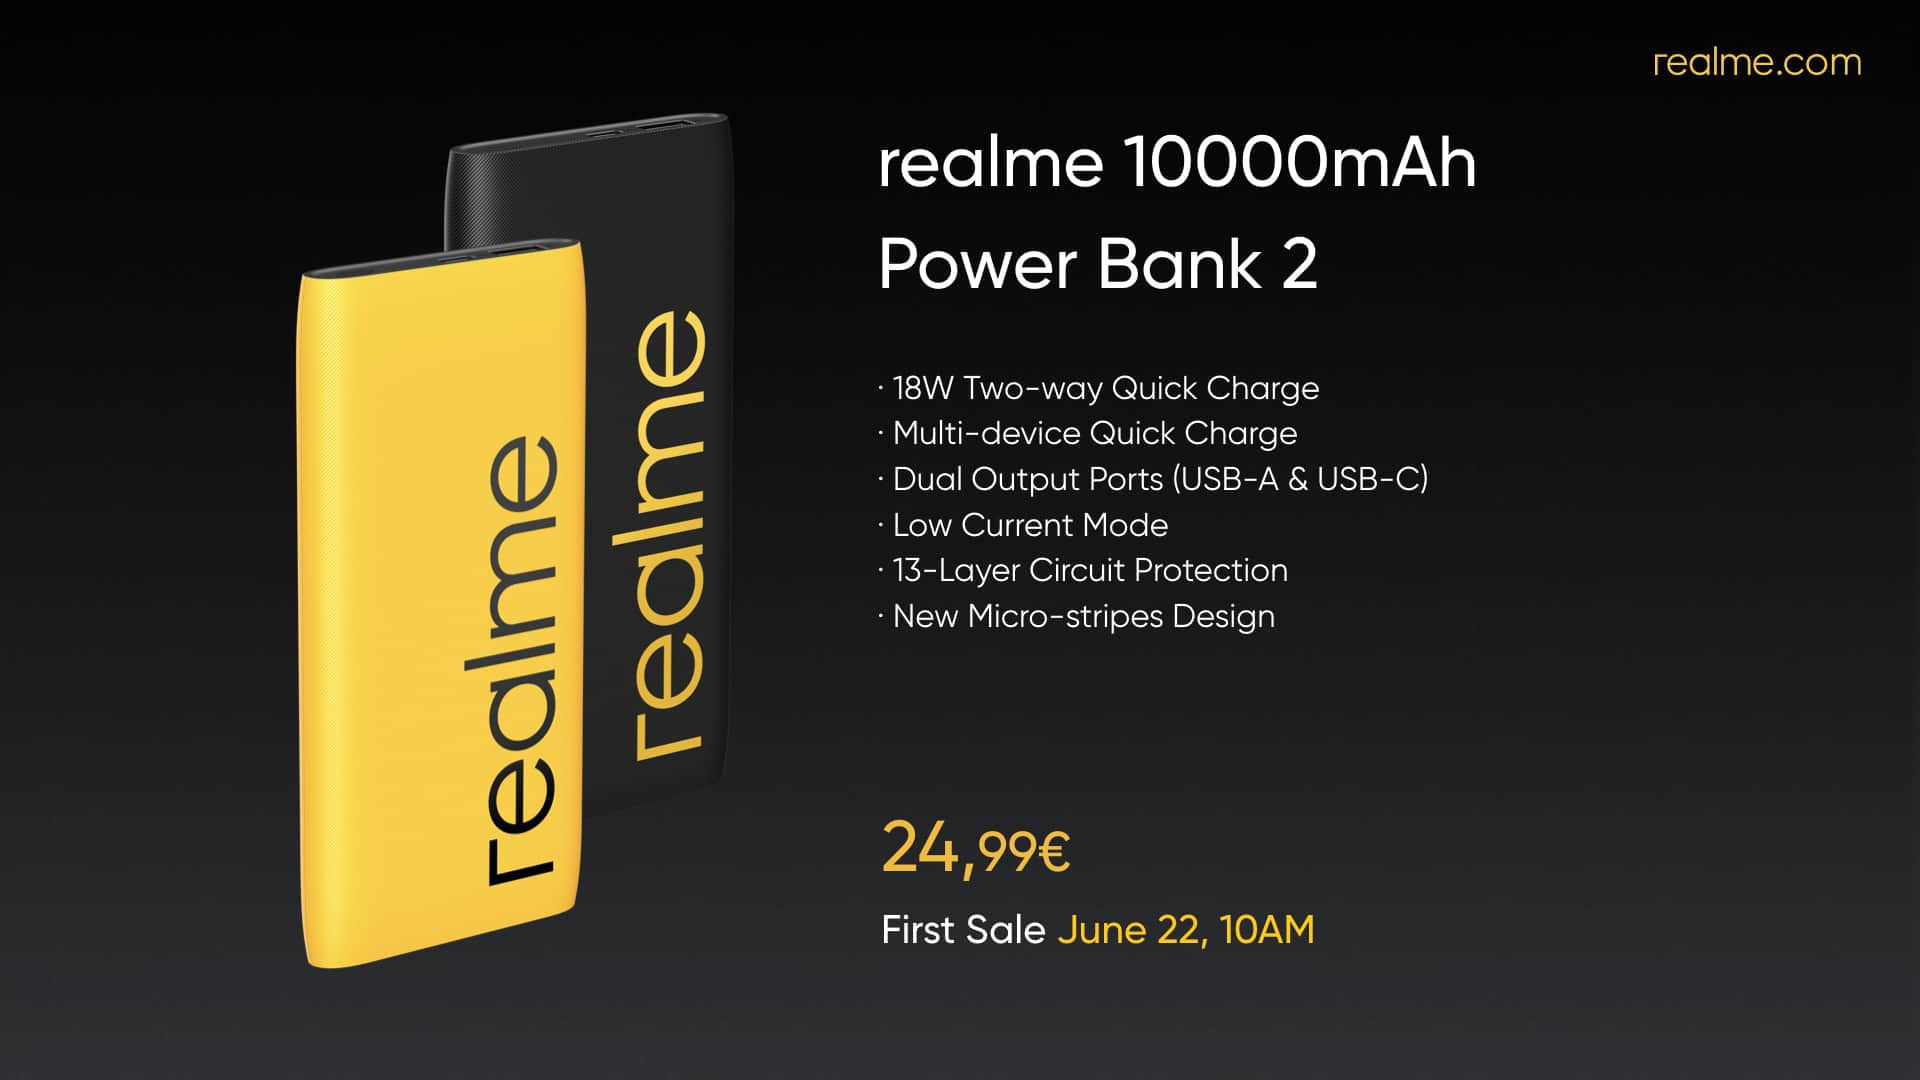 Realme 10 000mAh Power Bank 2 image 1